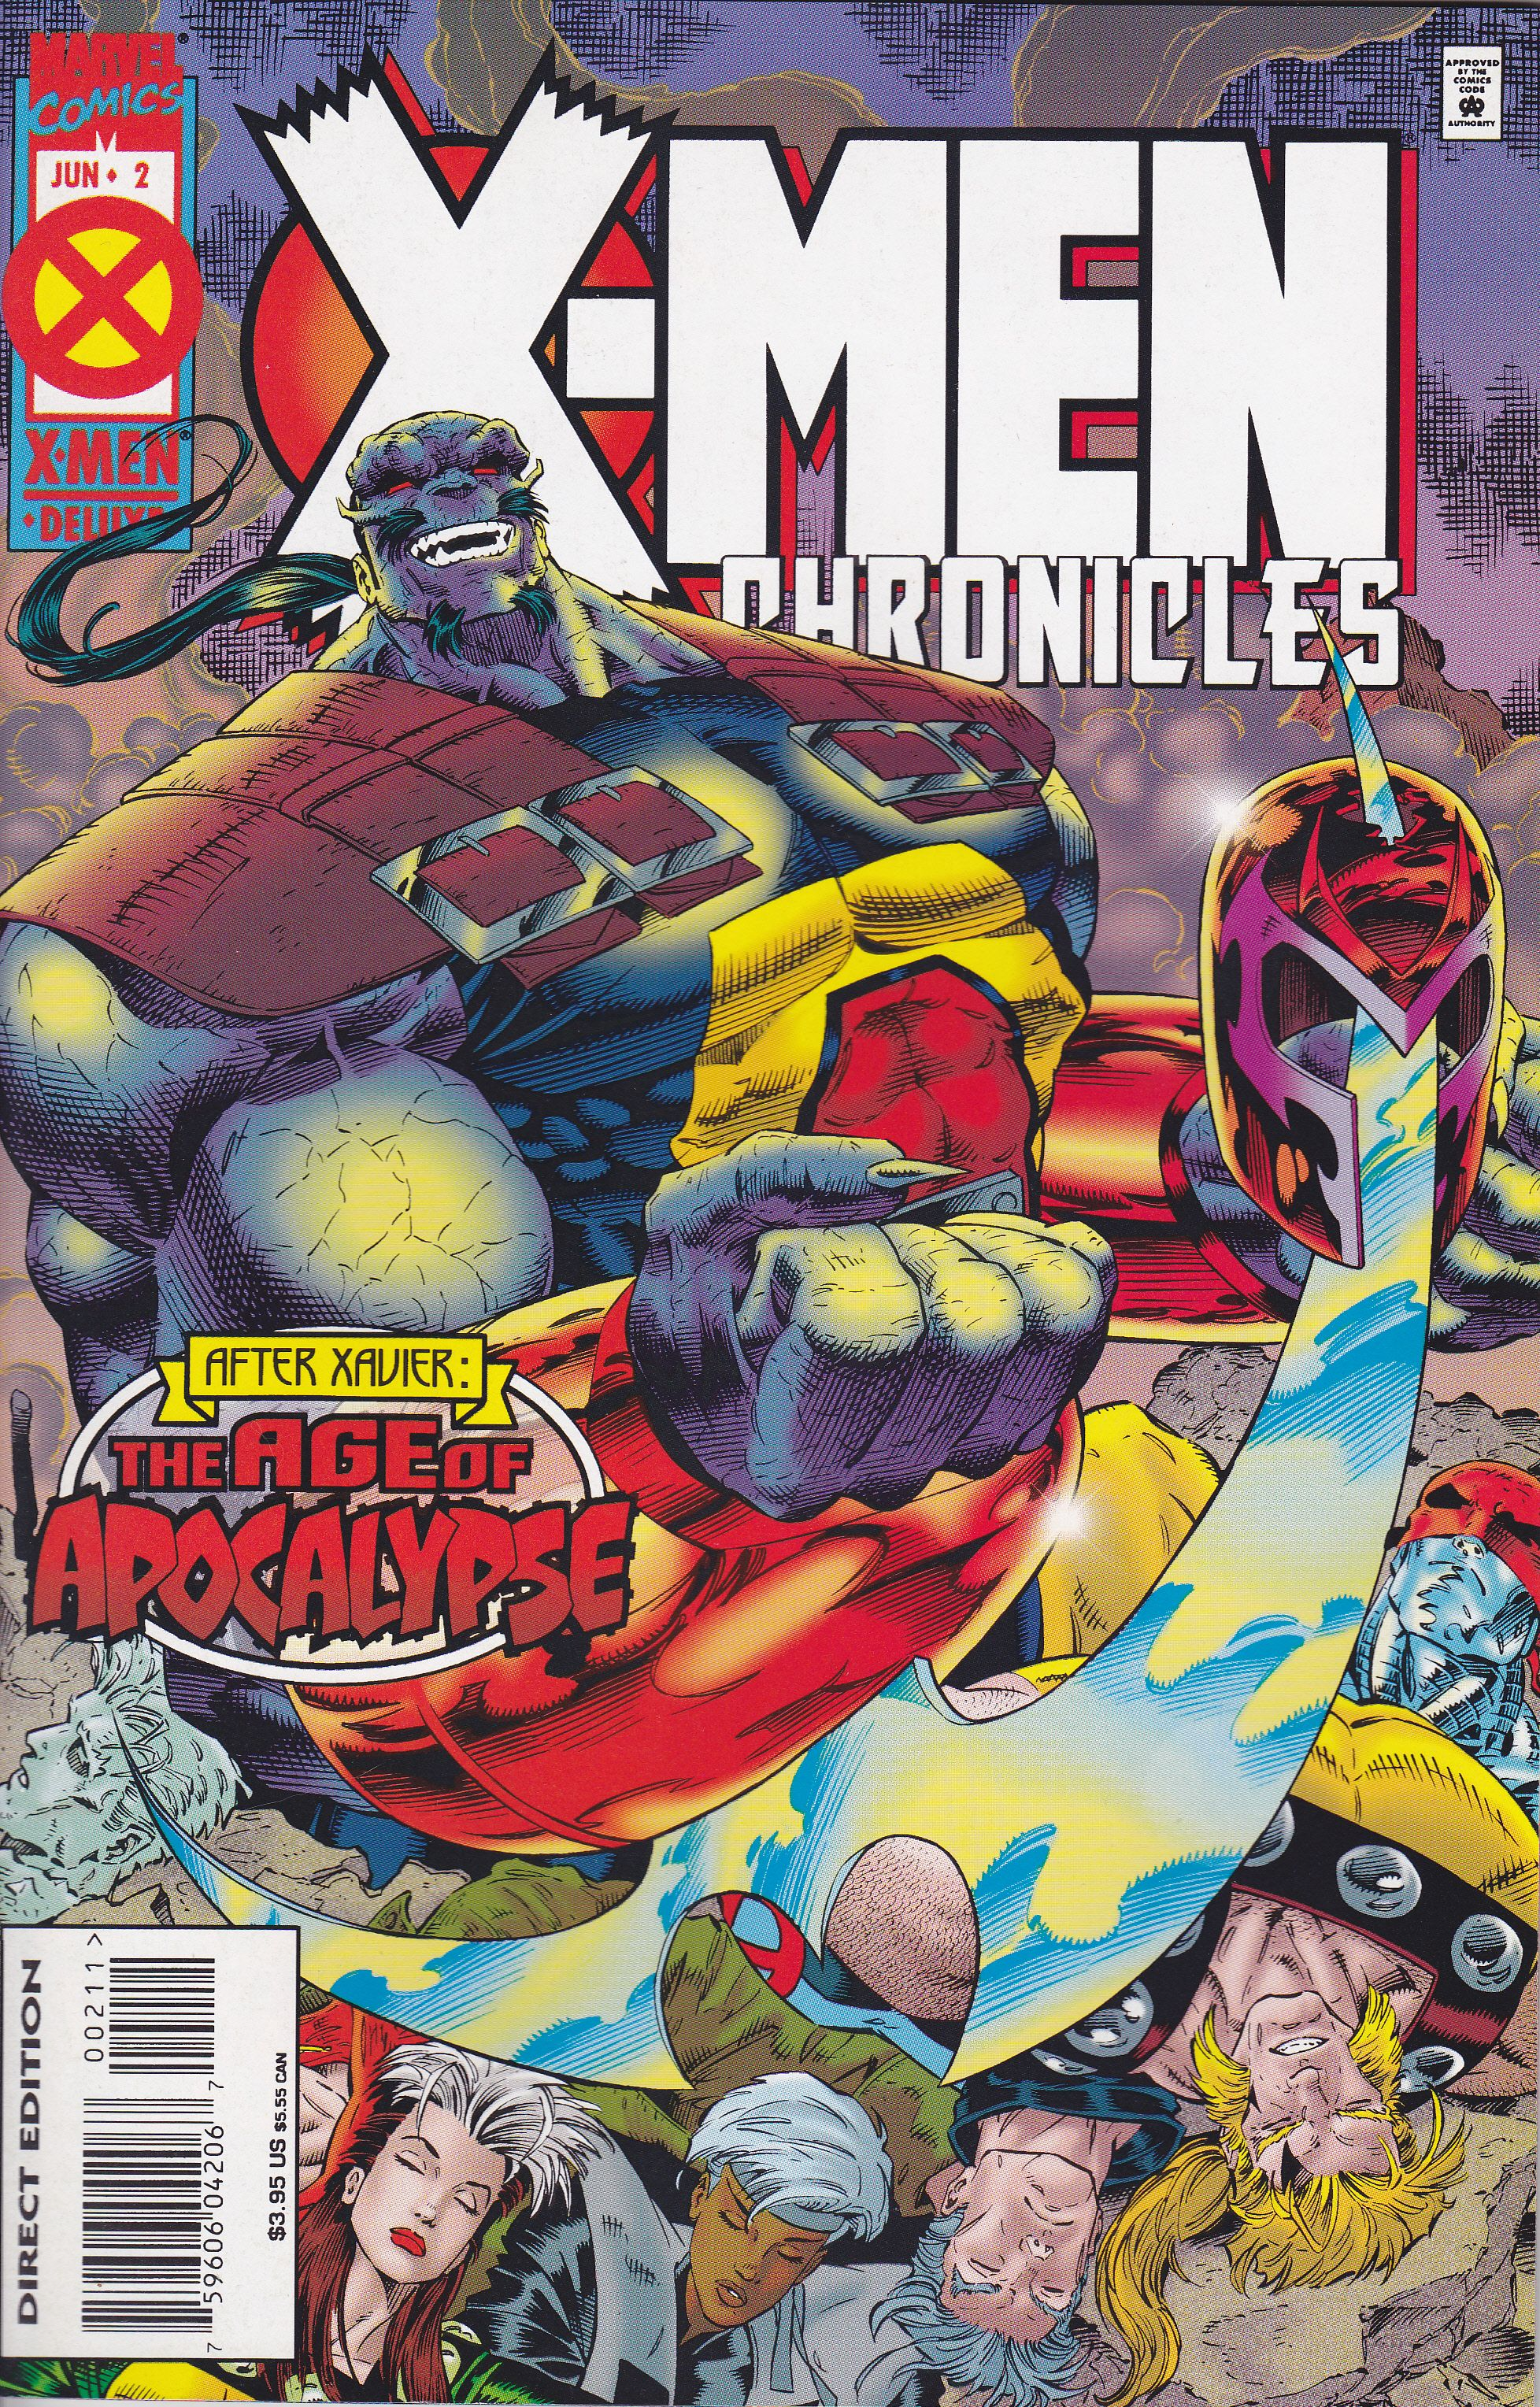 One Man's Worth] X-Men Chronicles #2   Made of Fail Productions